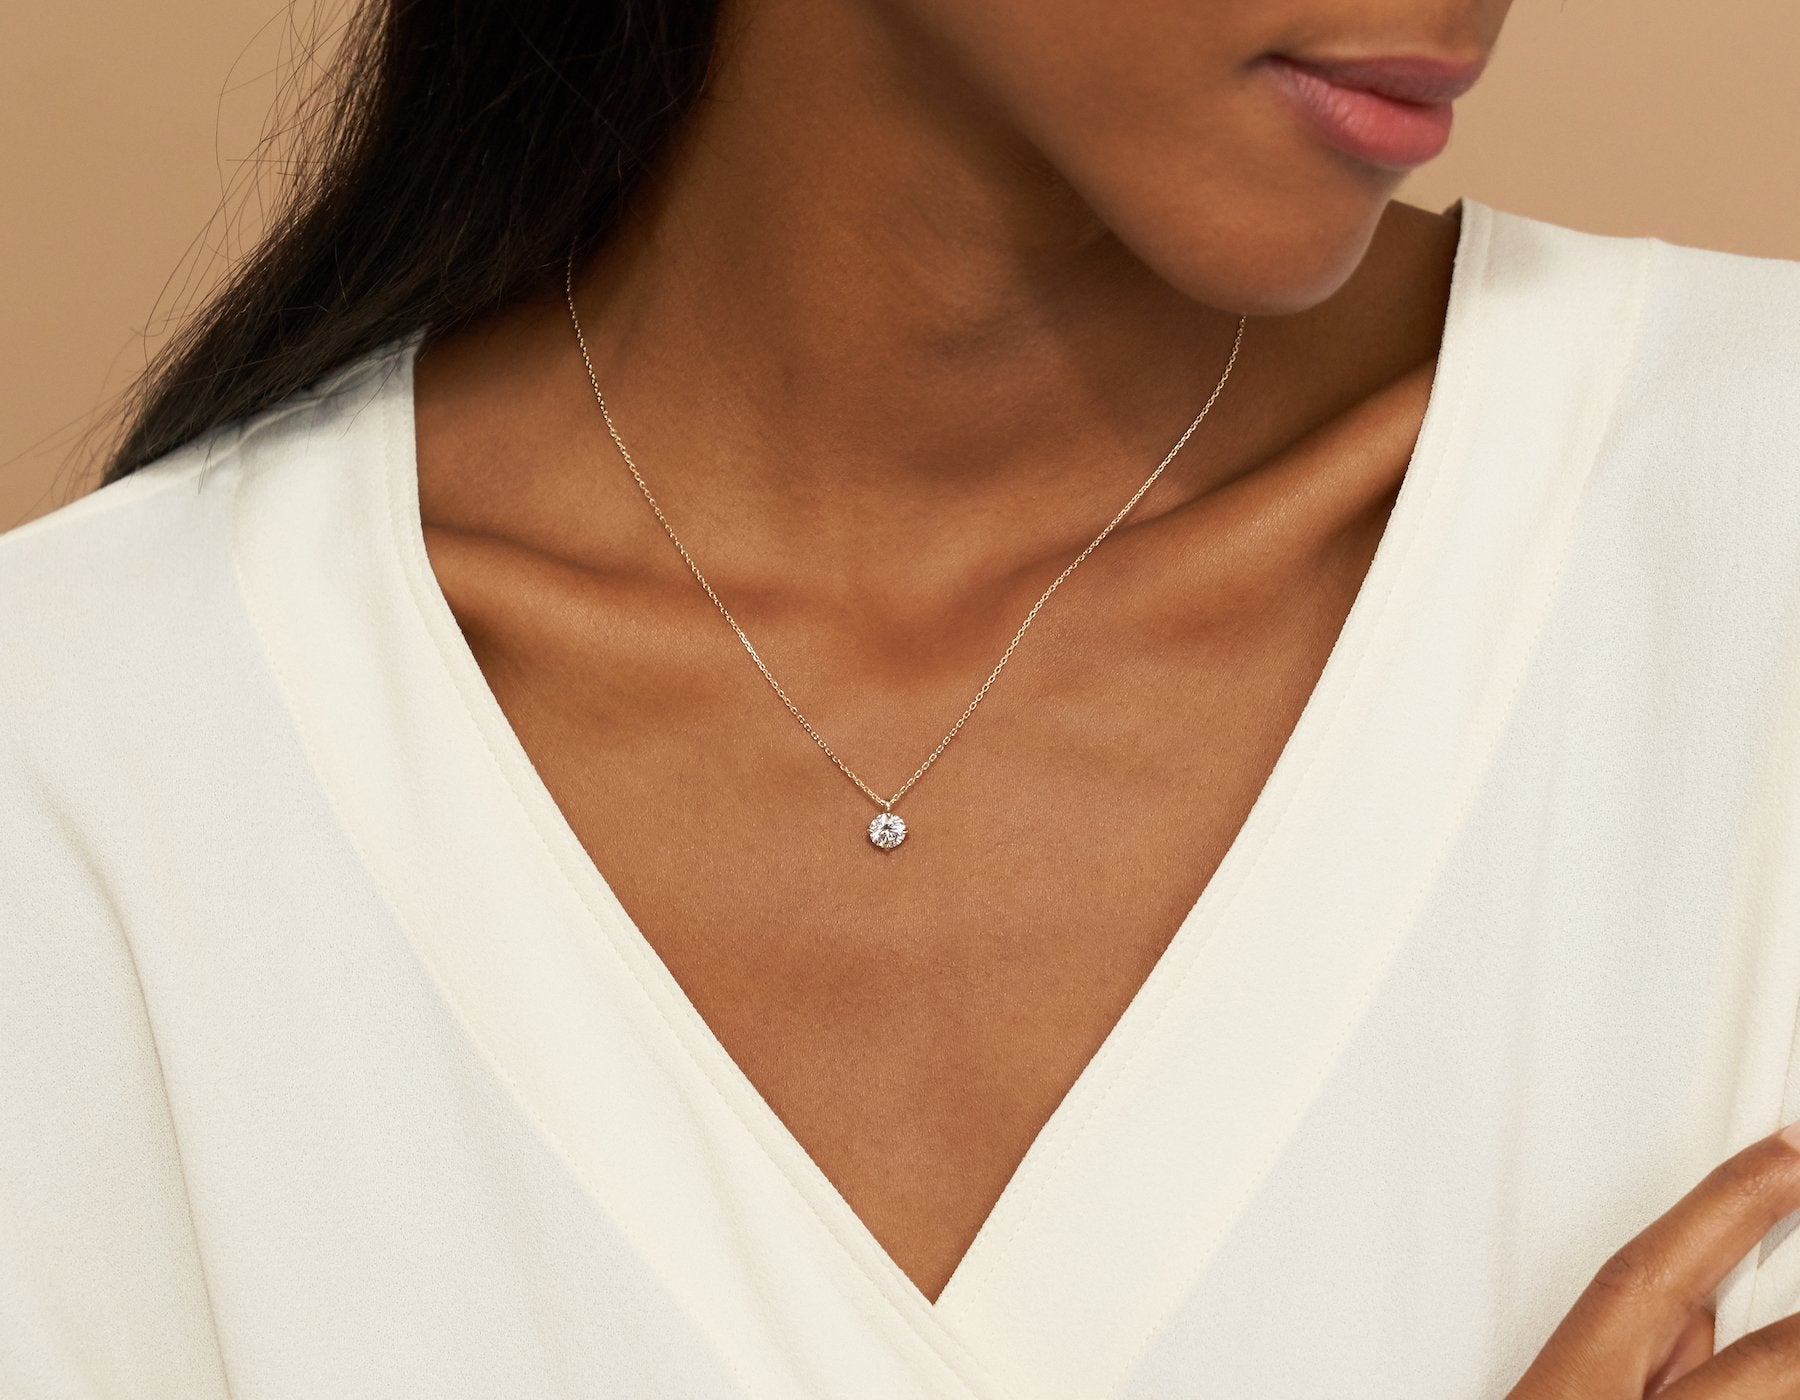 Model wearing Vrai 14K solid gold solitaire round brilliant diamond pendant necklace 1ct minimalist delicate, 14K White Gold